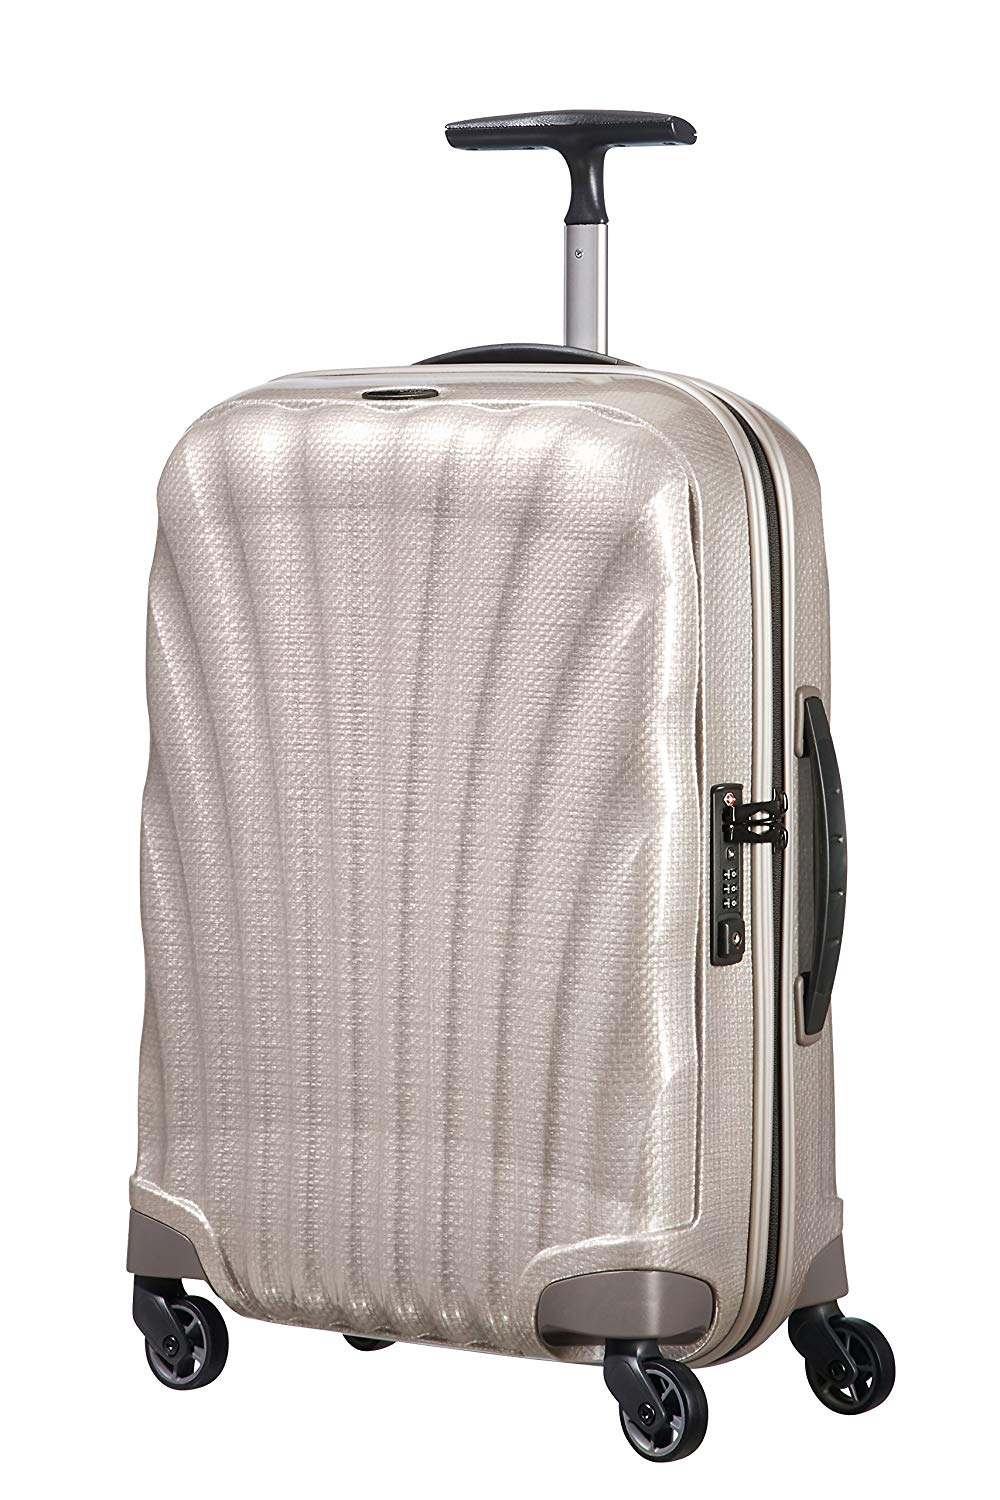 Samsonite Cosmolite Spinner (4 wheels) 69cm Pearl